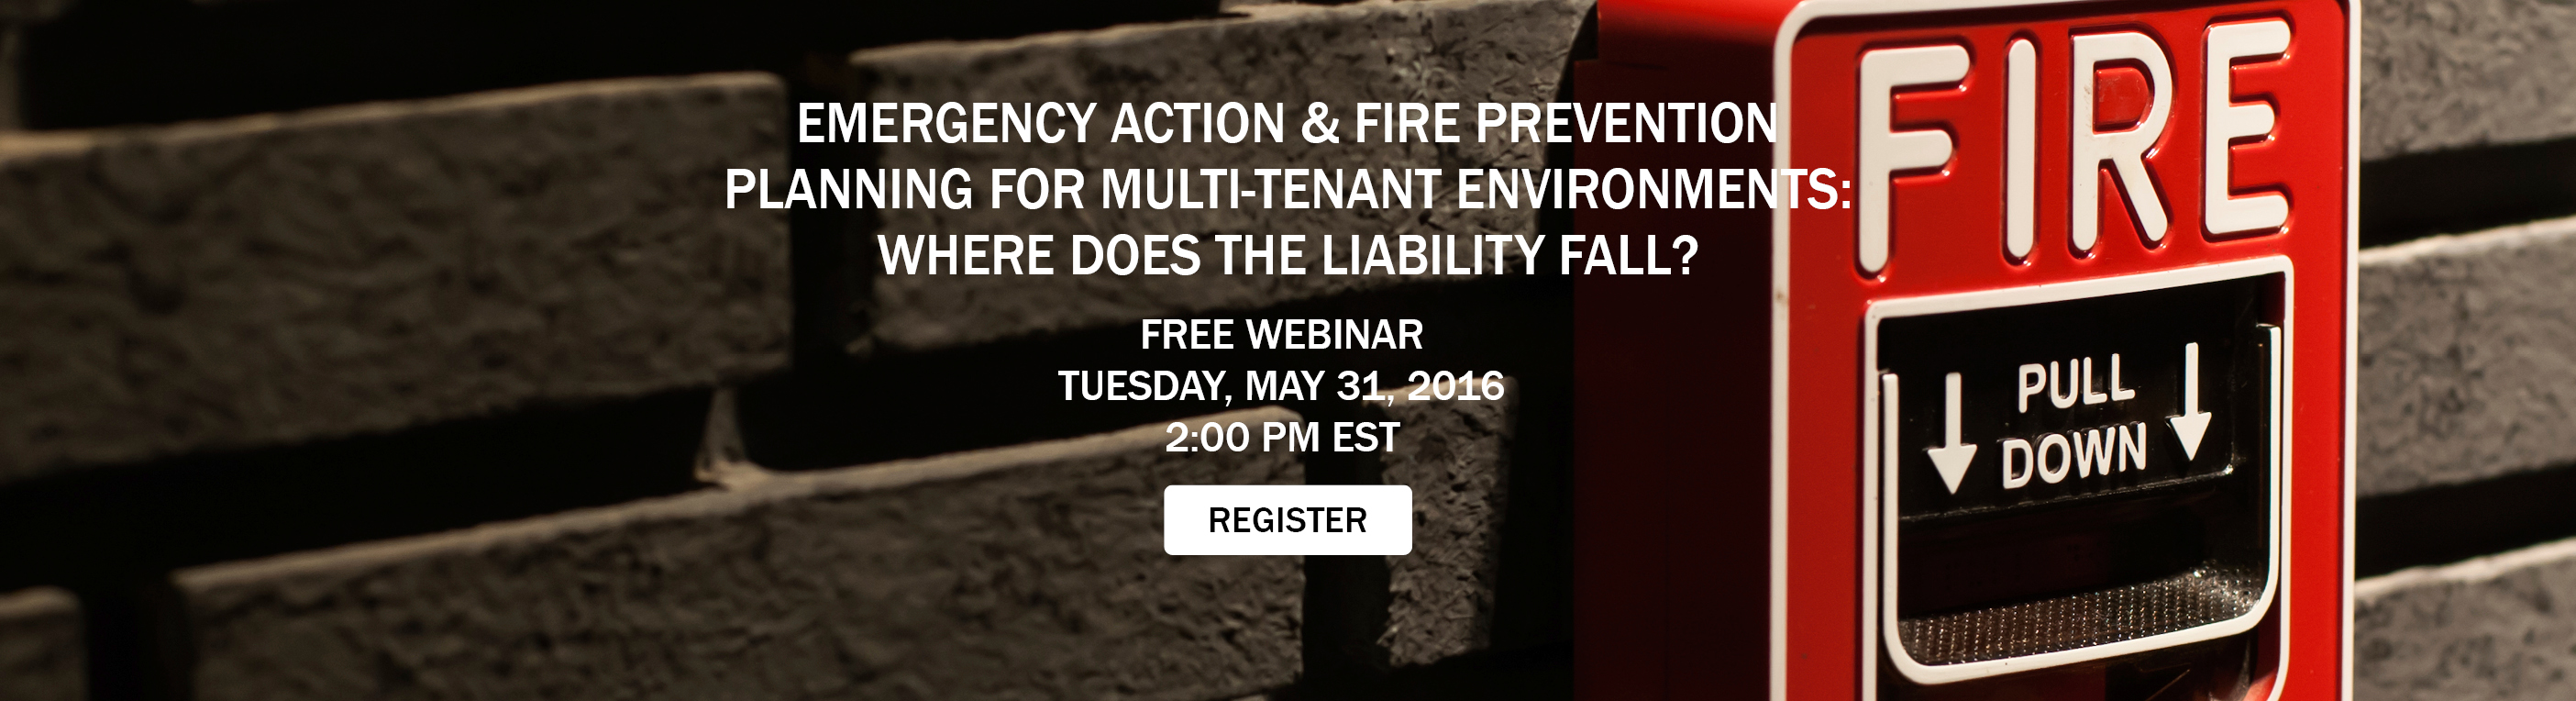 EAP-and-Fire-Planning-Webinar-Hero-Image-1